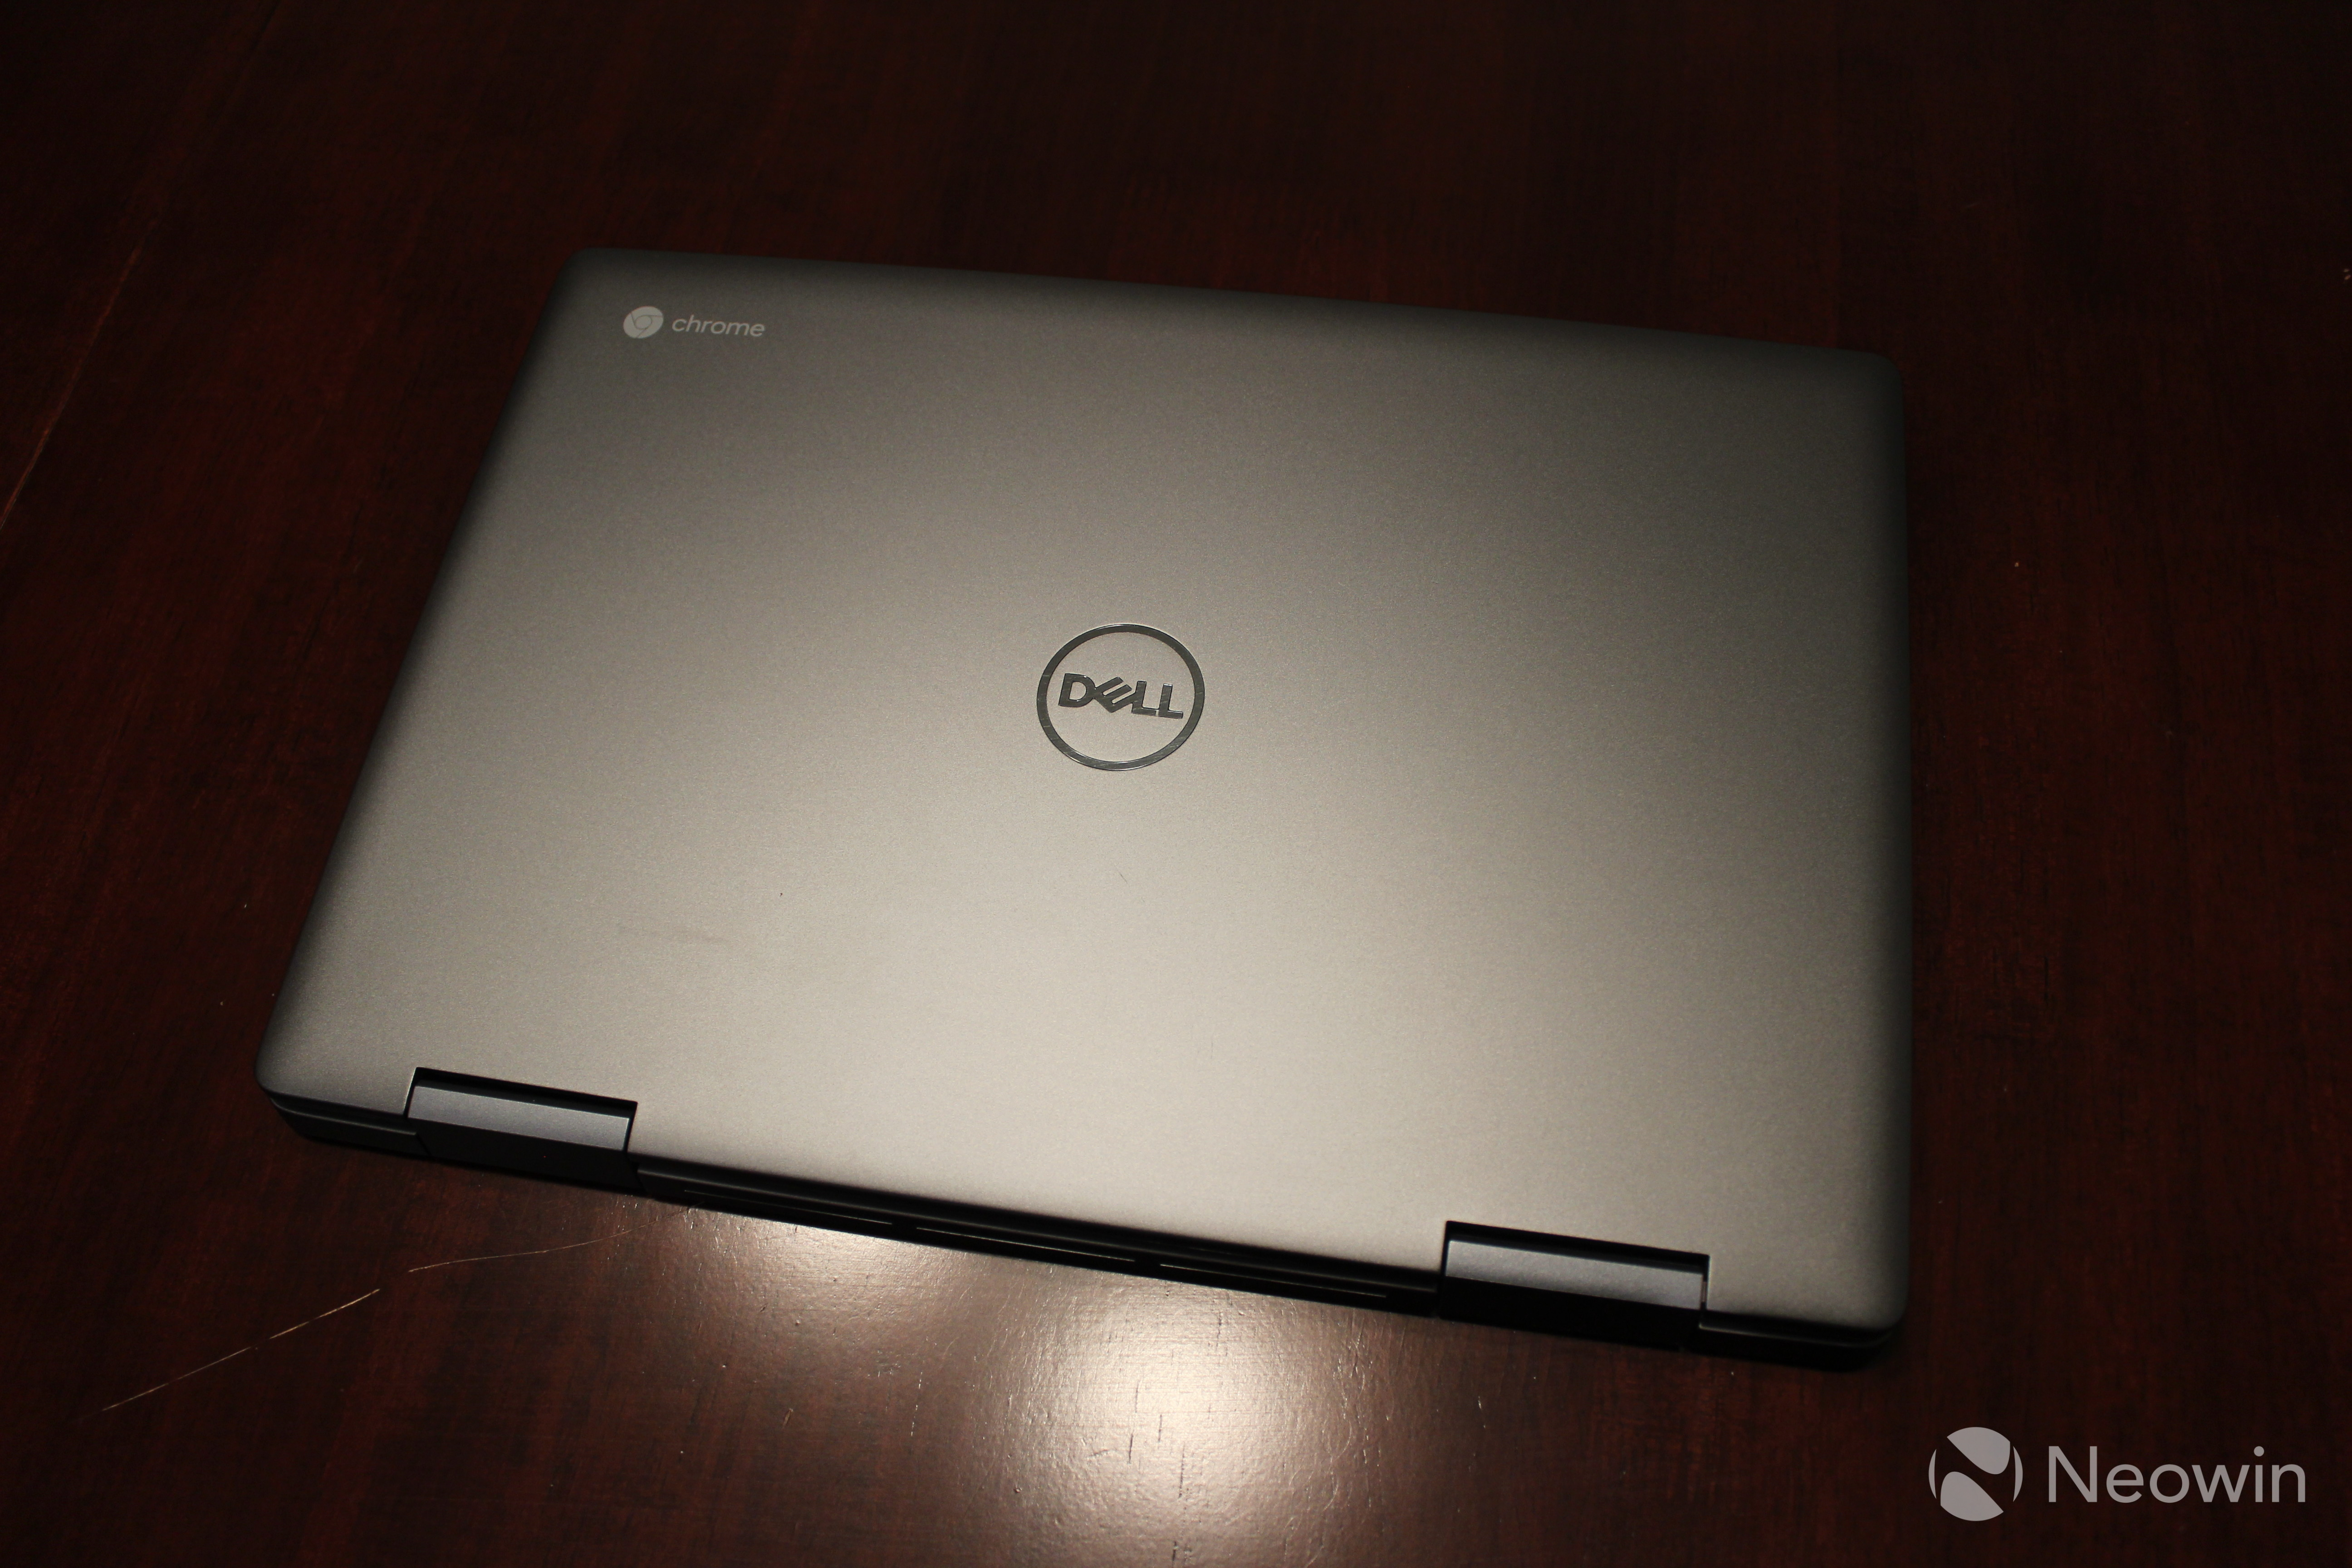 Dell Inspiron Chromebook 14 2-in-1 review: A Chrome OS convertible